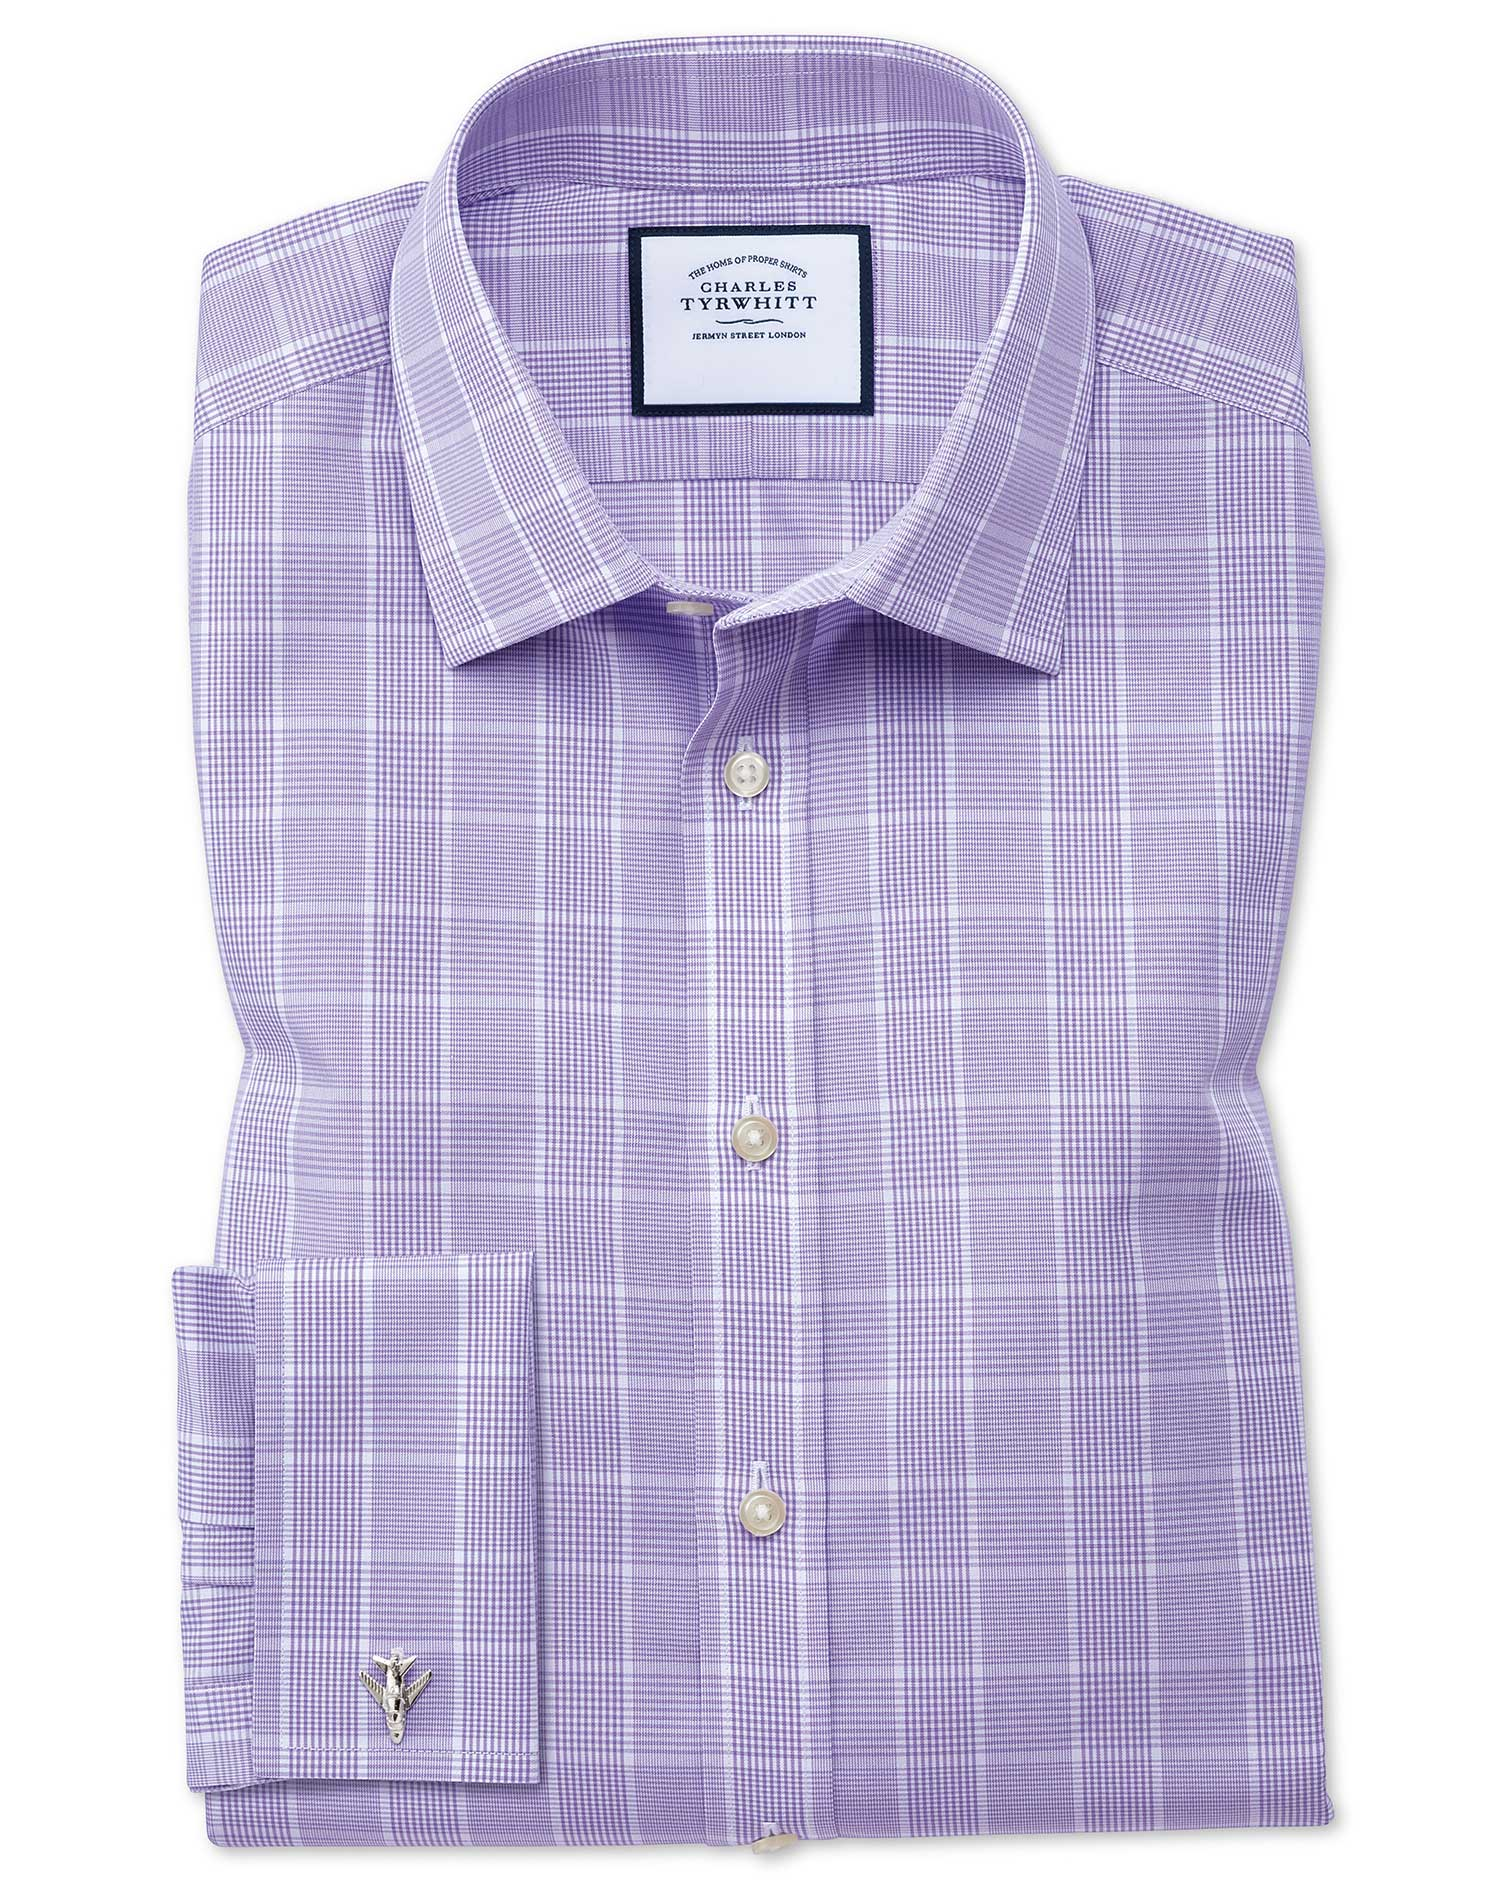 Classic Fit Non-Iron Prince Of Wales Lilac Cotton Formal Shirt Double Cuff Size 18/35 by Charles Tyr